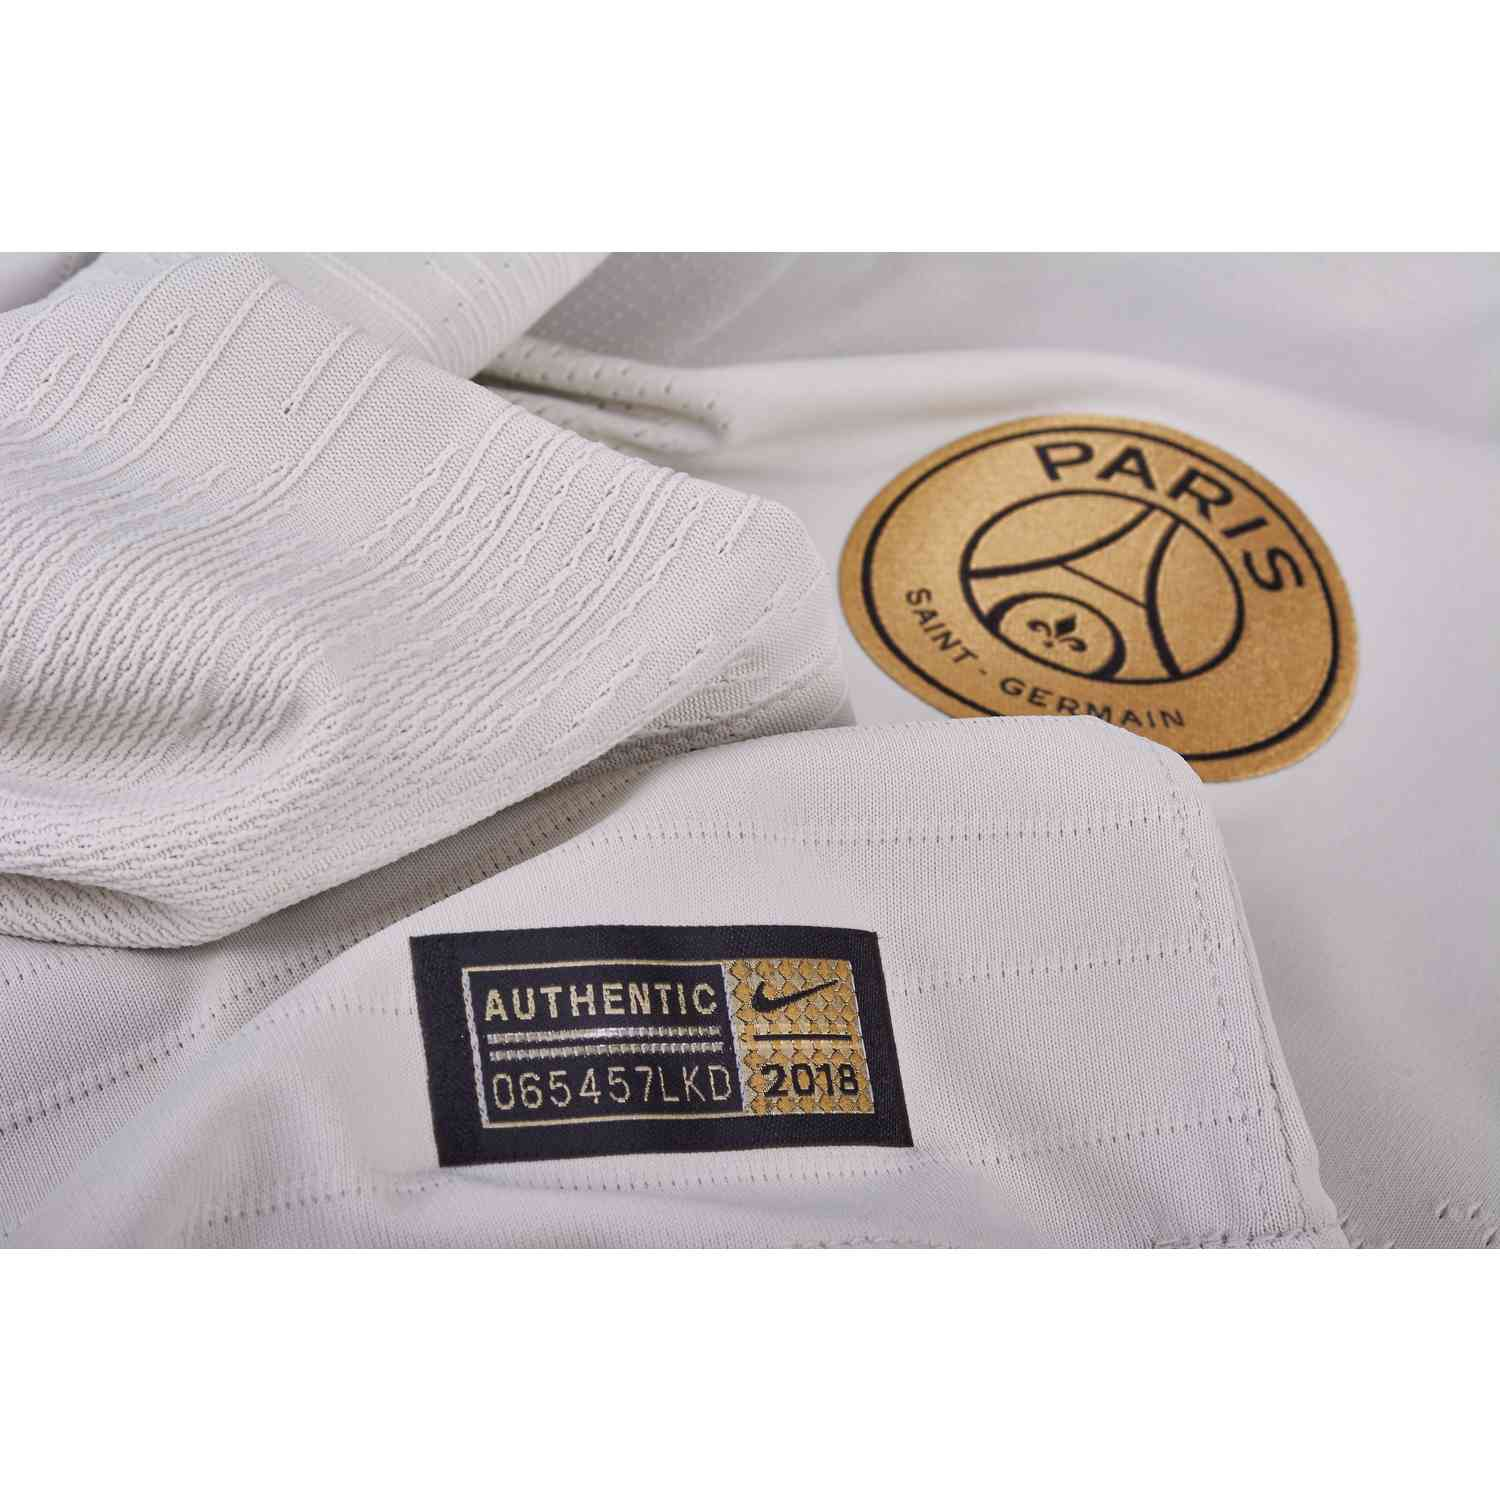 factory authentic 3853a ef45d Nike PSG Away Match Jersey - Light Bone/Truly Gold - Soccer ...